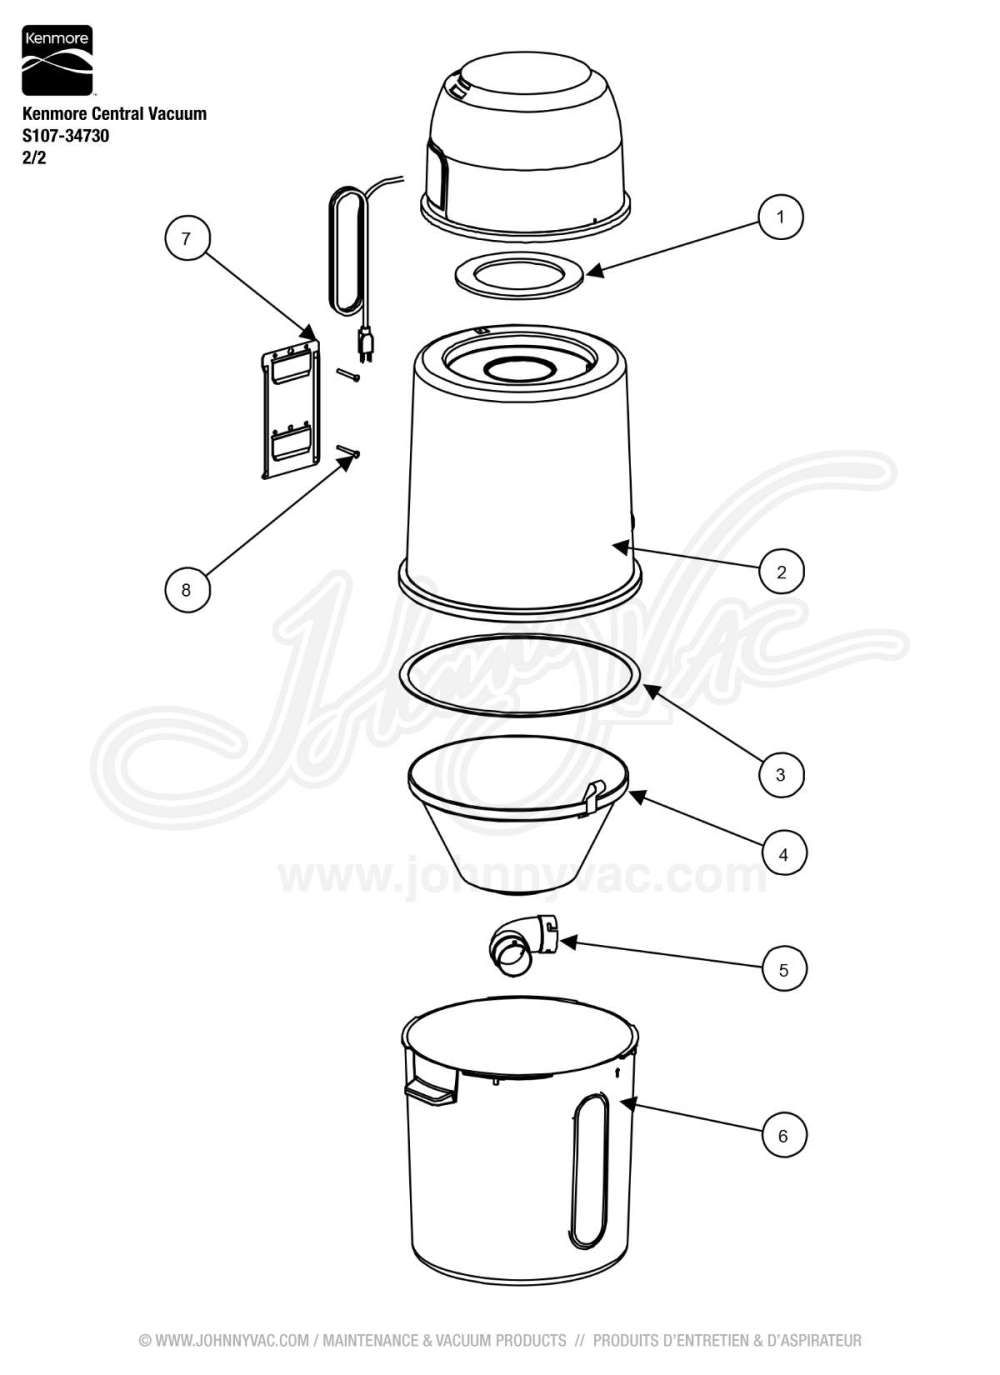 medium resolution of s107 parts diagram wiring diagramkenmore central vacuum s107 34730vacuum schematic exploded view for kenmore